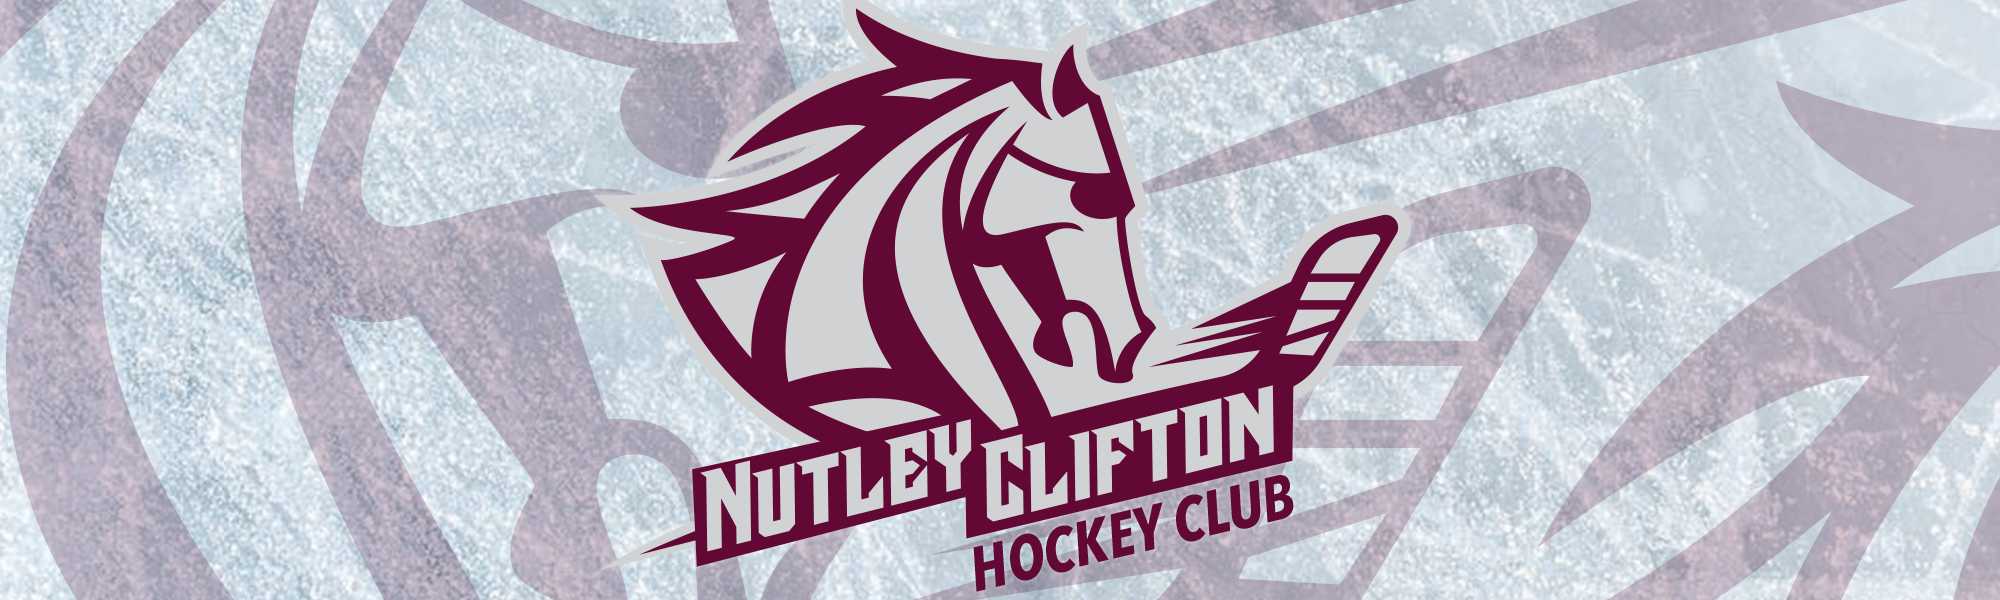 Nutley clifton website banner